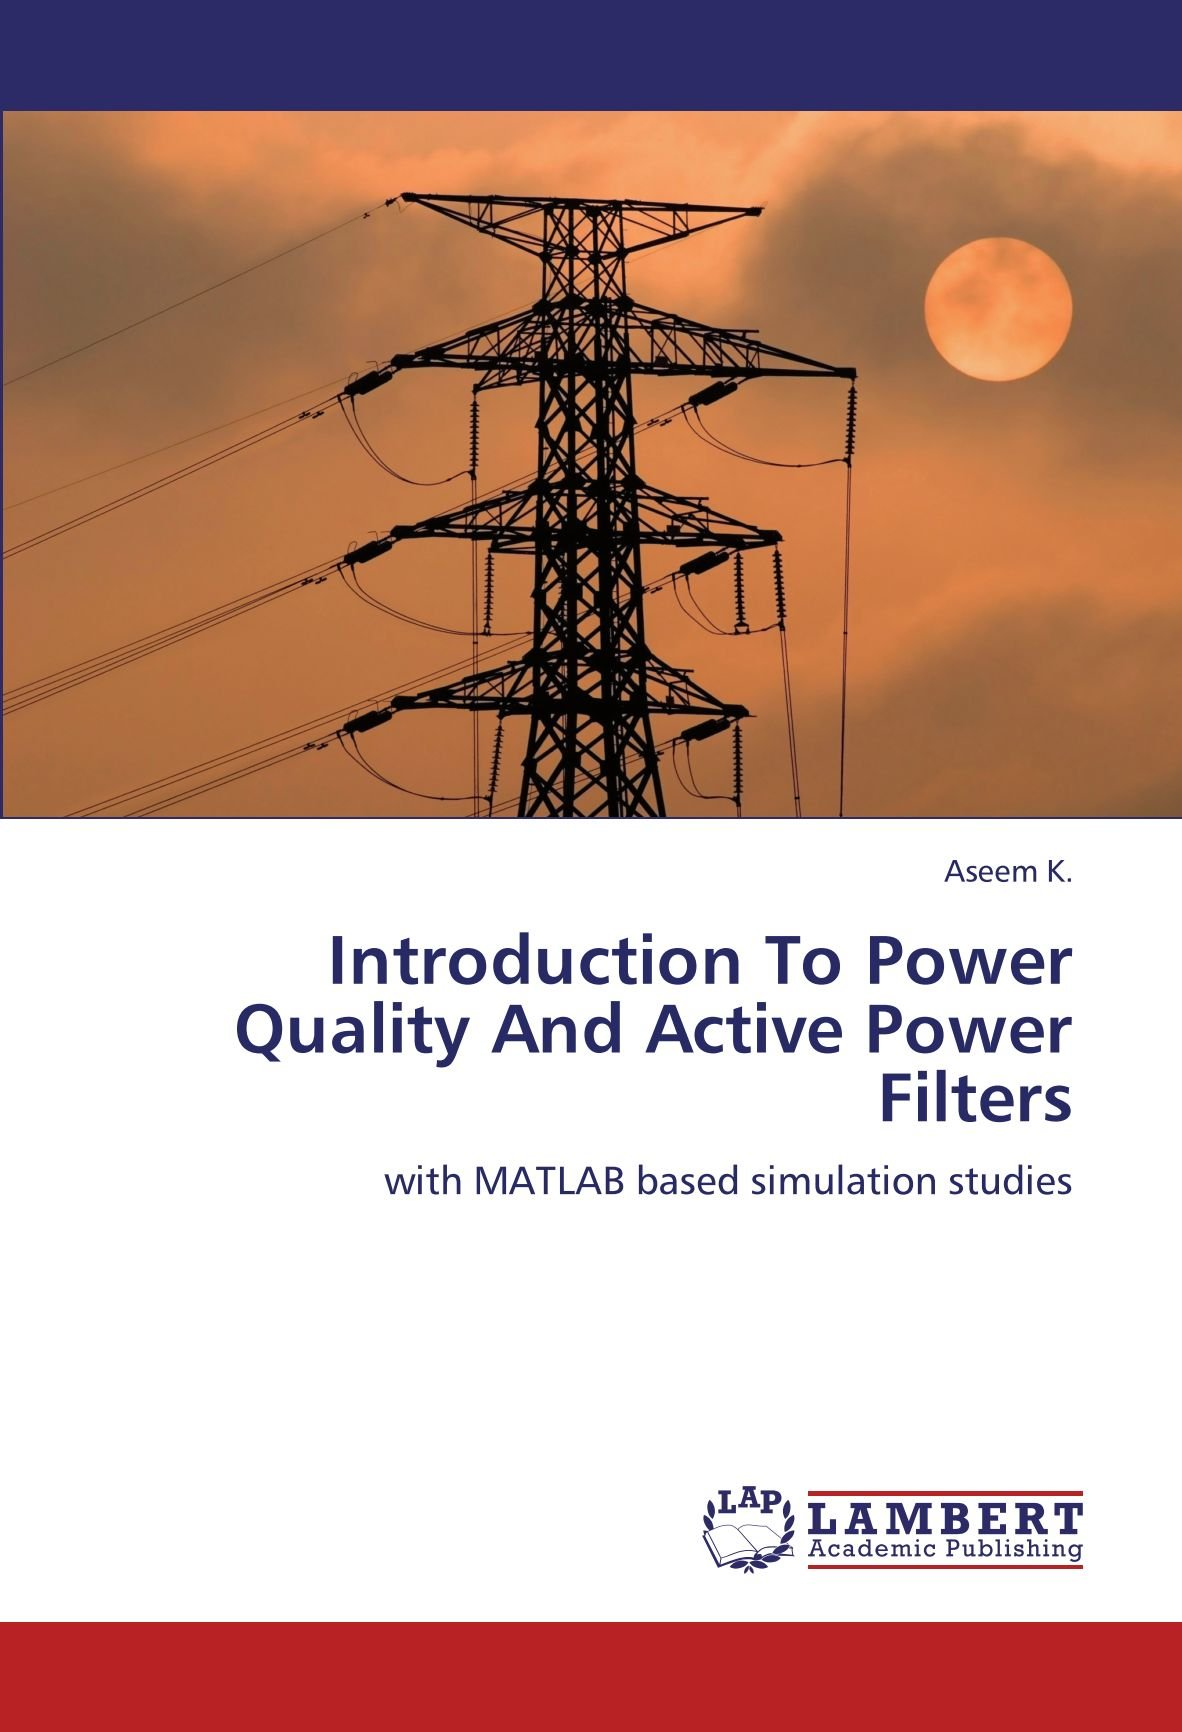 Introduction To Power Quality And Active Power Filters: with